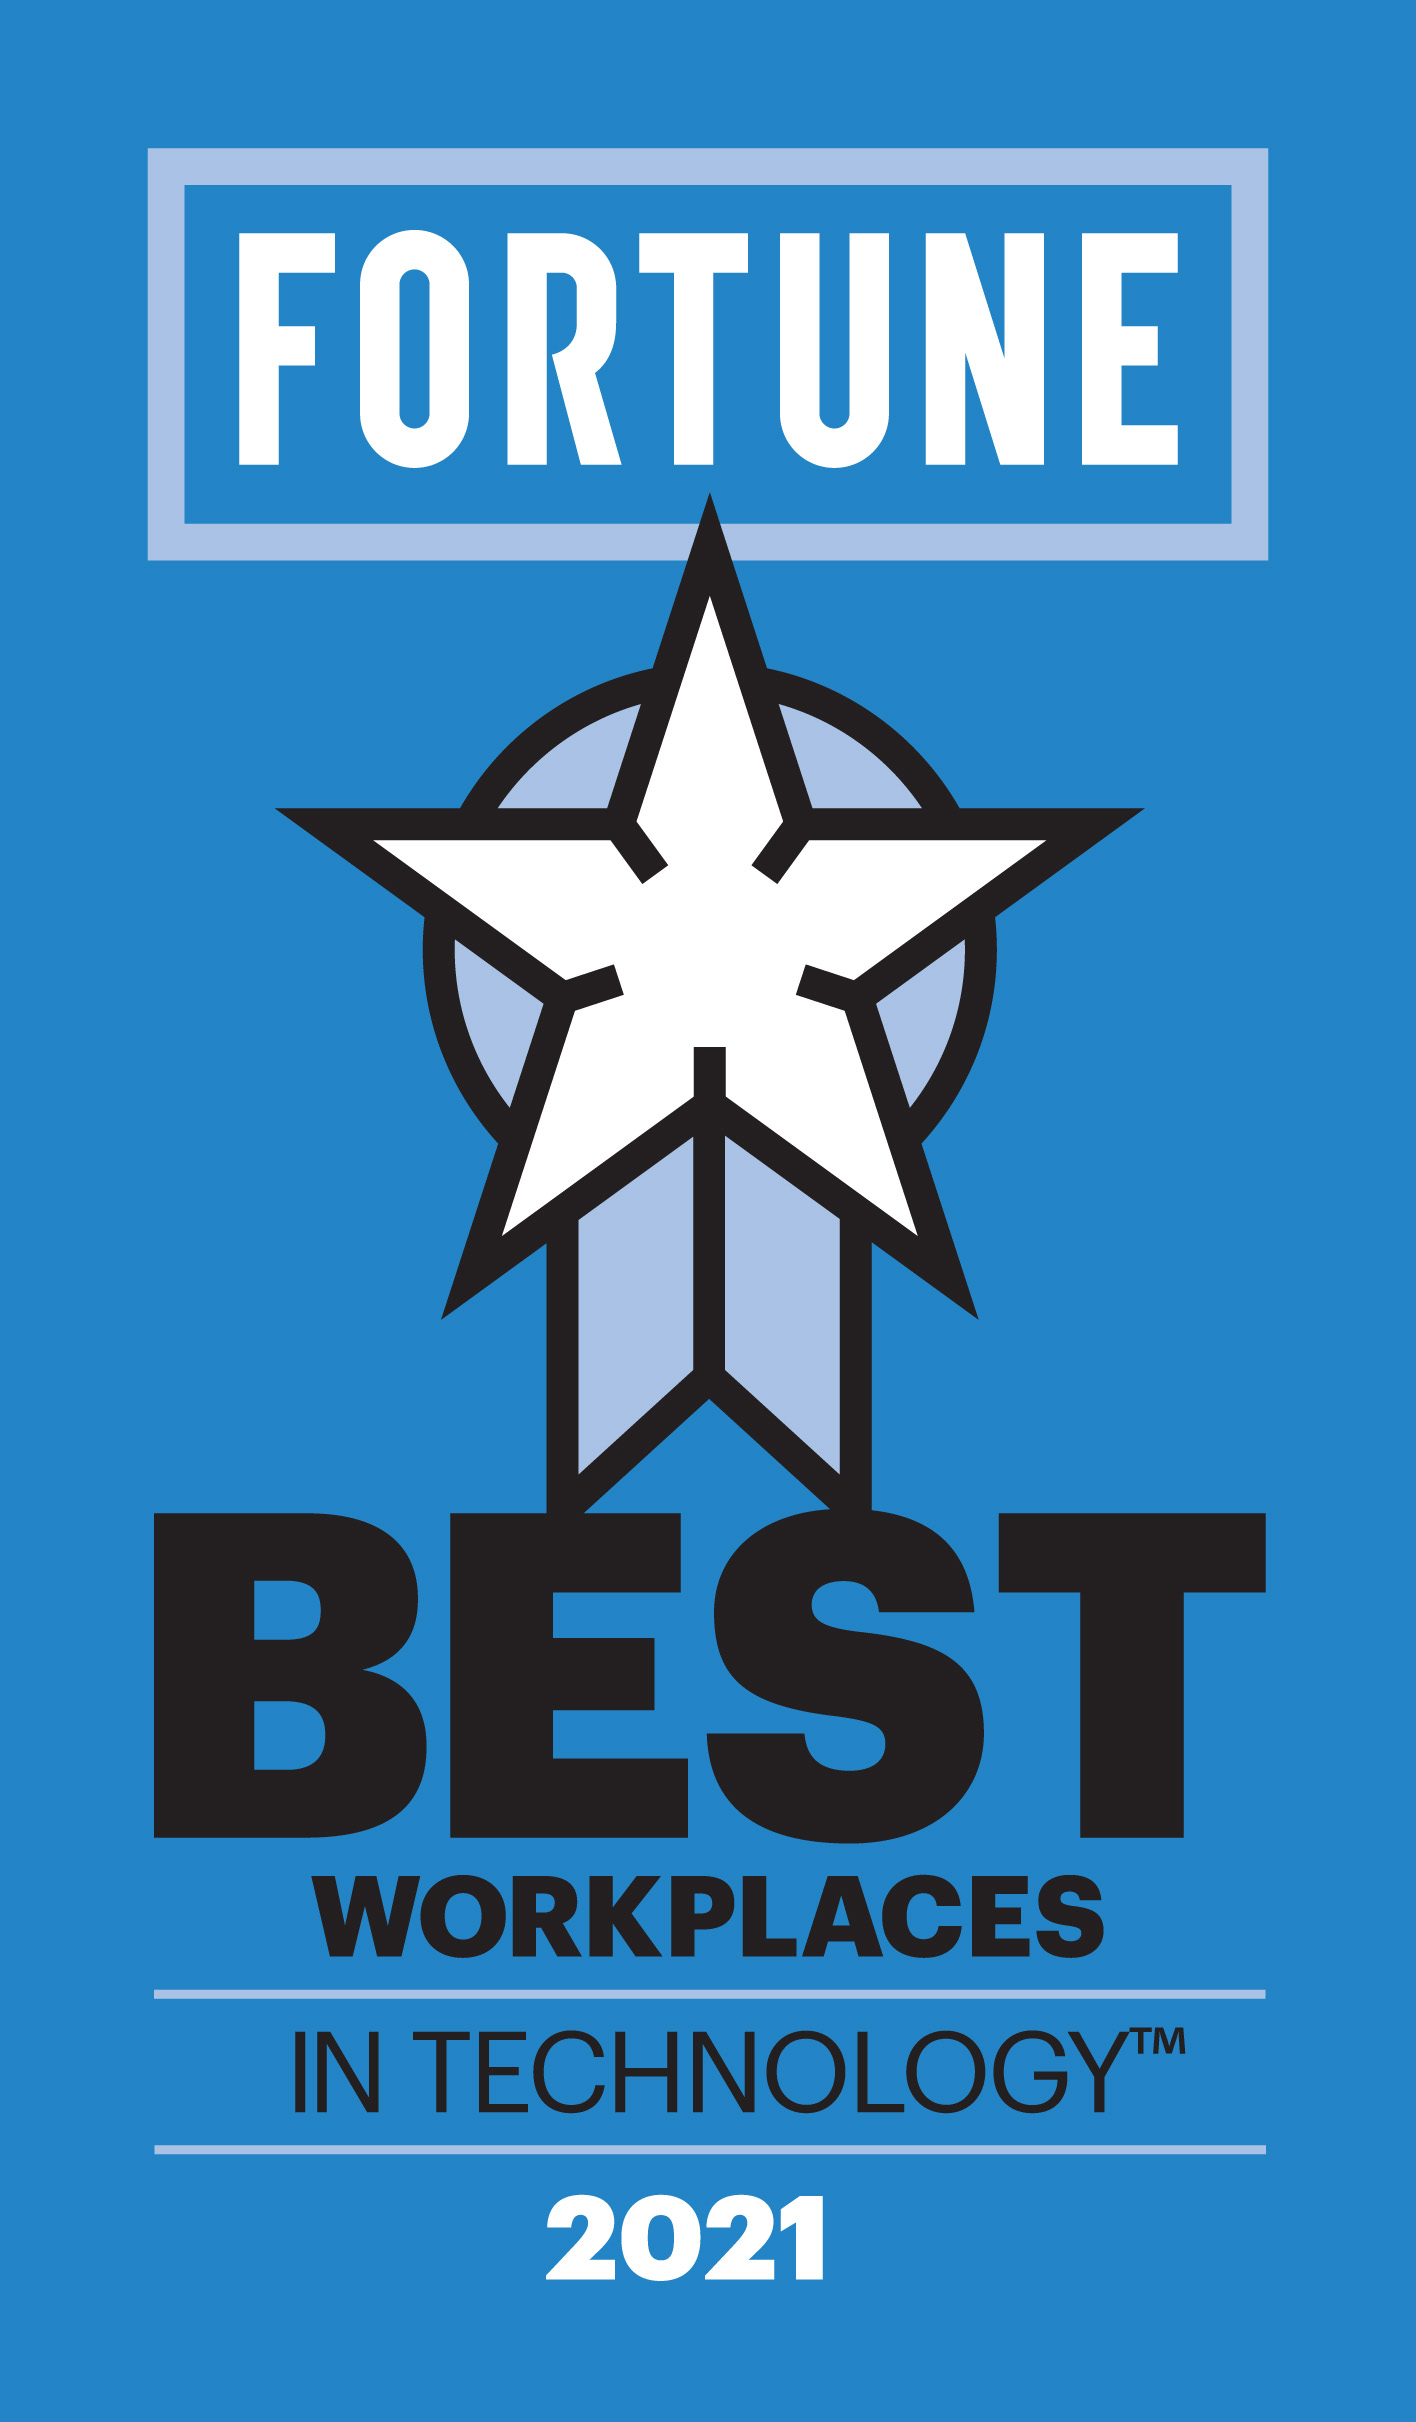 Fortune Best Workplaces 2021